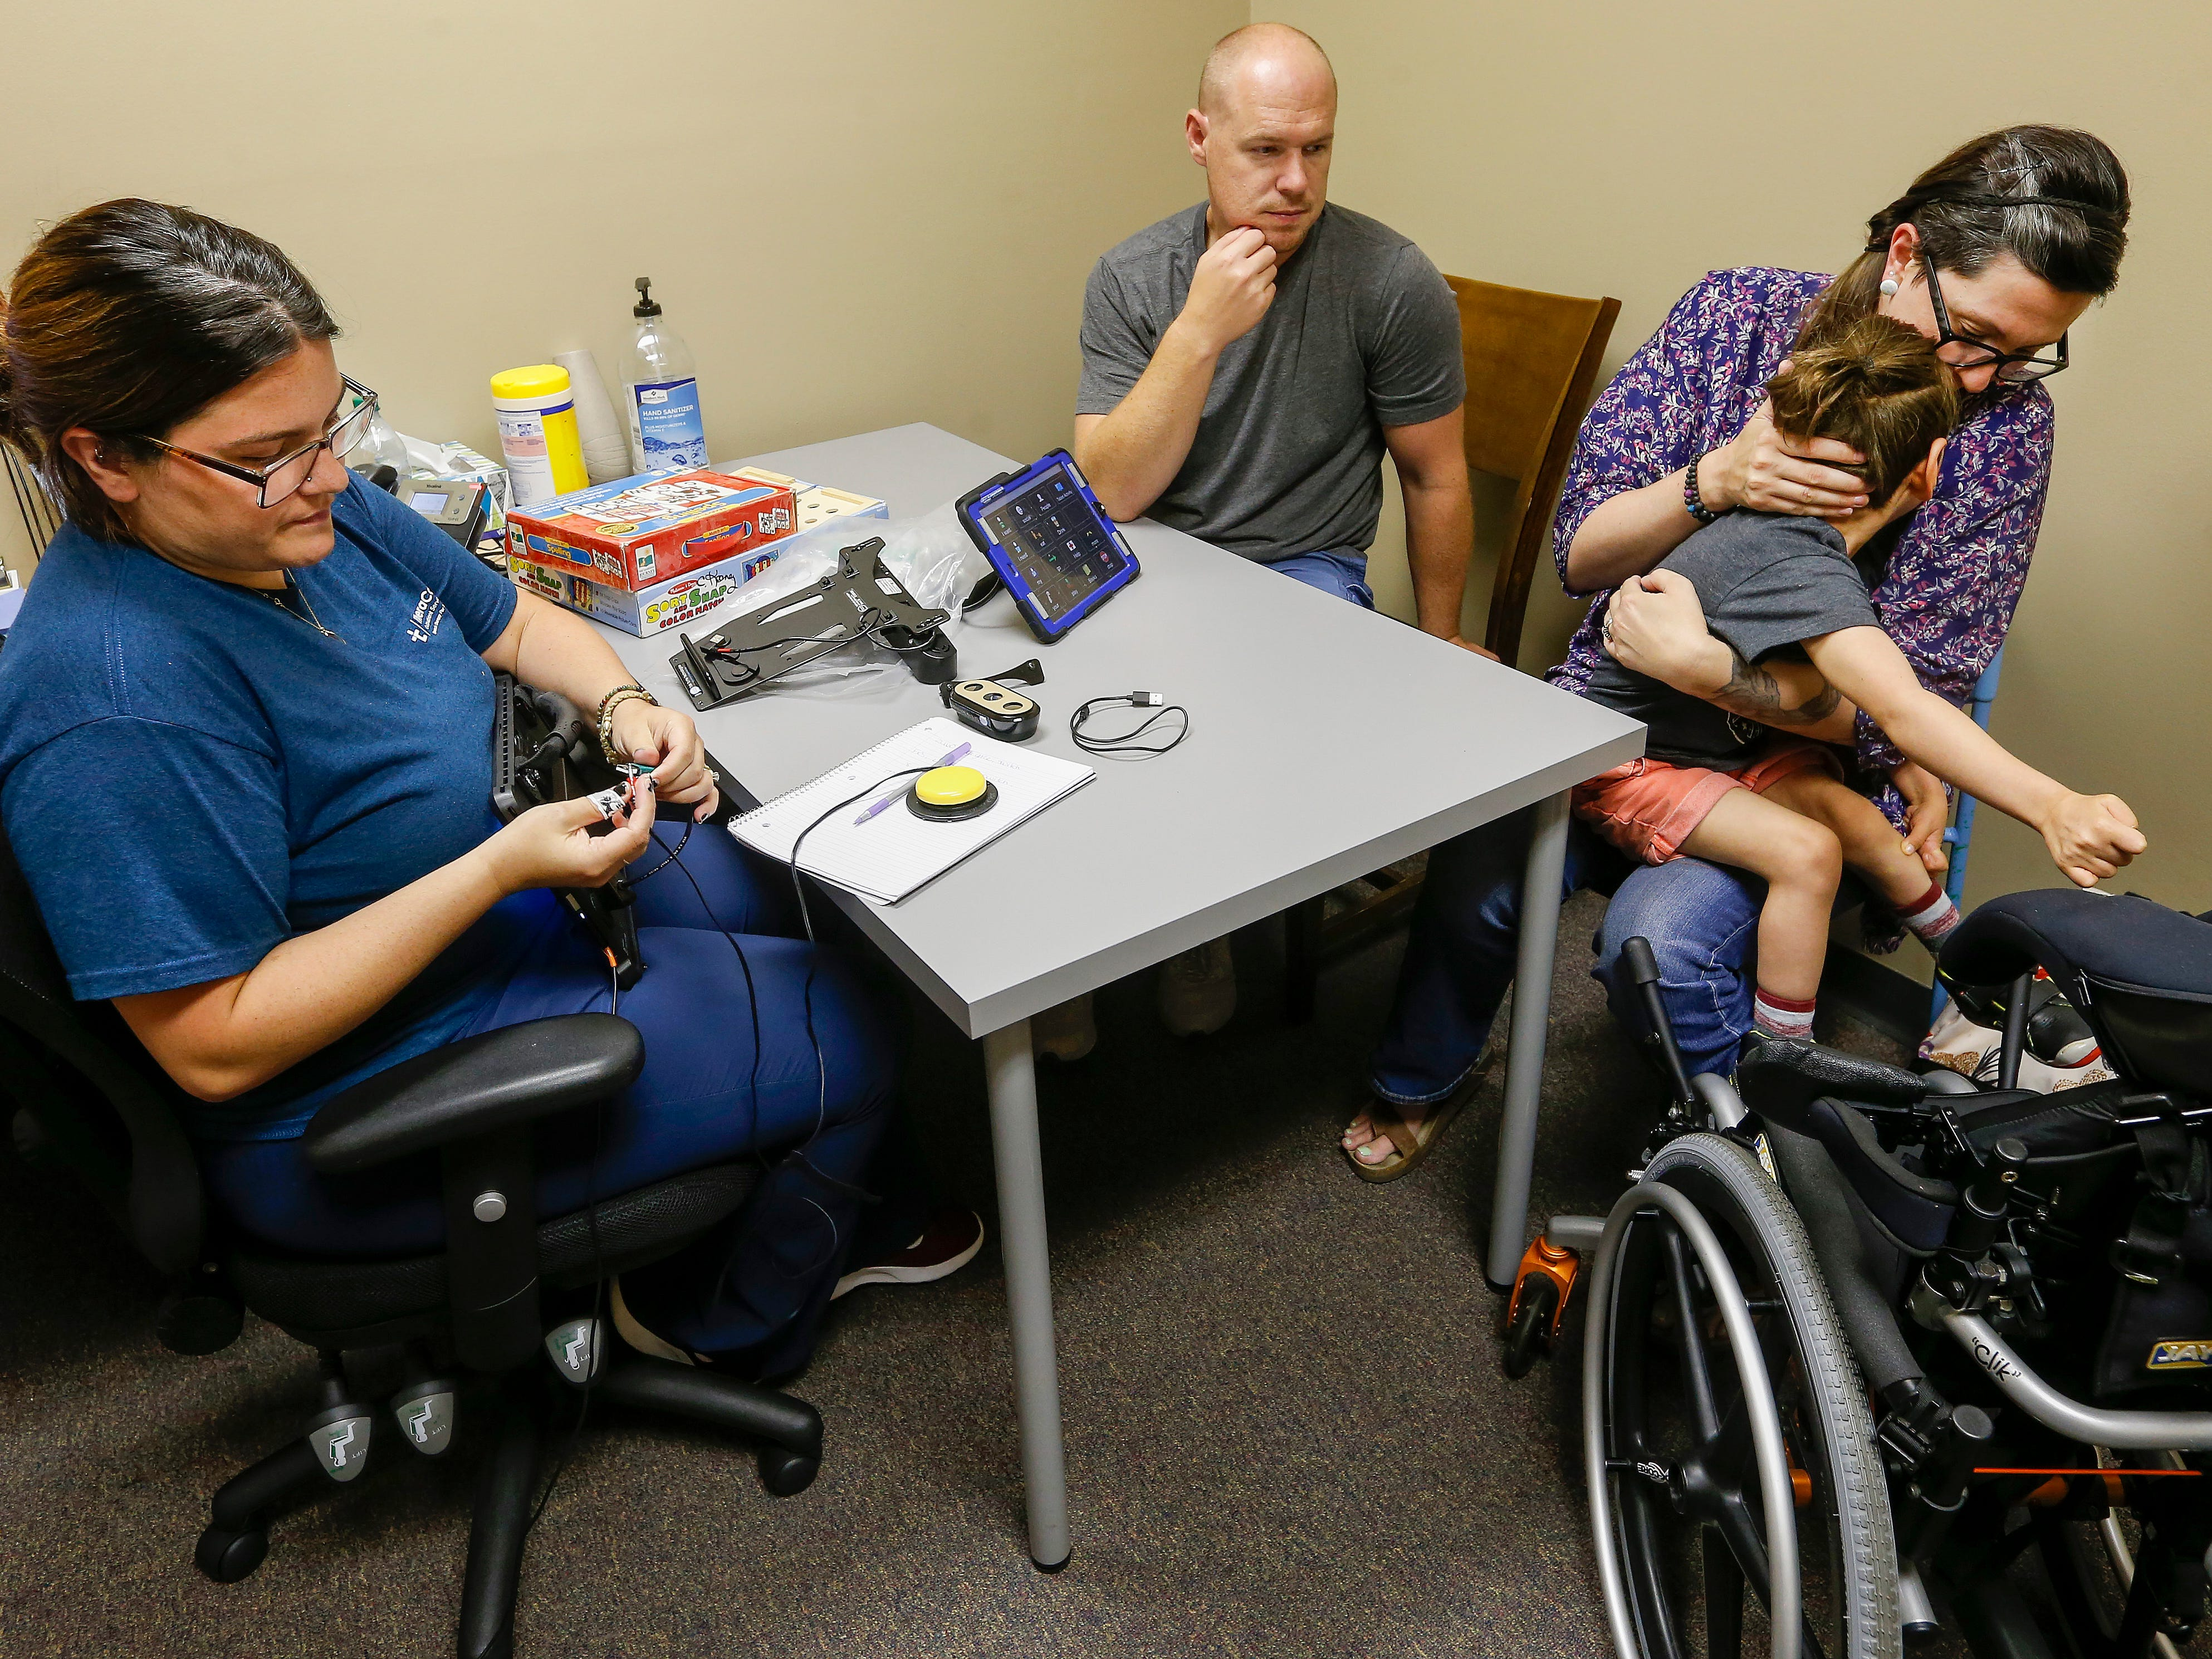 Chris watches as Ashley Markum holds Ayden Markum, 5, as he has a seizure while meeting with Allyson Beary about getting an eyegaze communication device at TheraCare in Springfield on Tuesday, June 12, 2018.